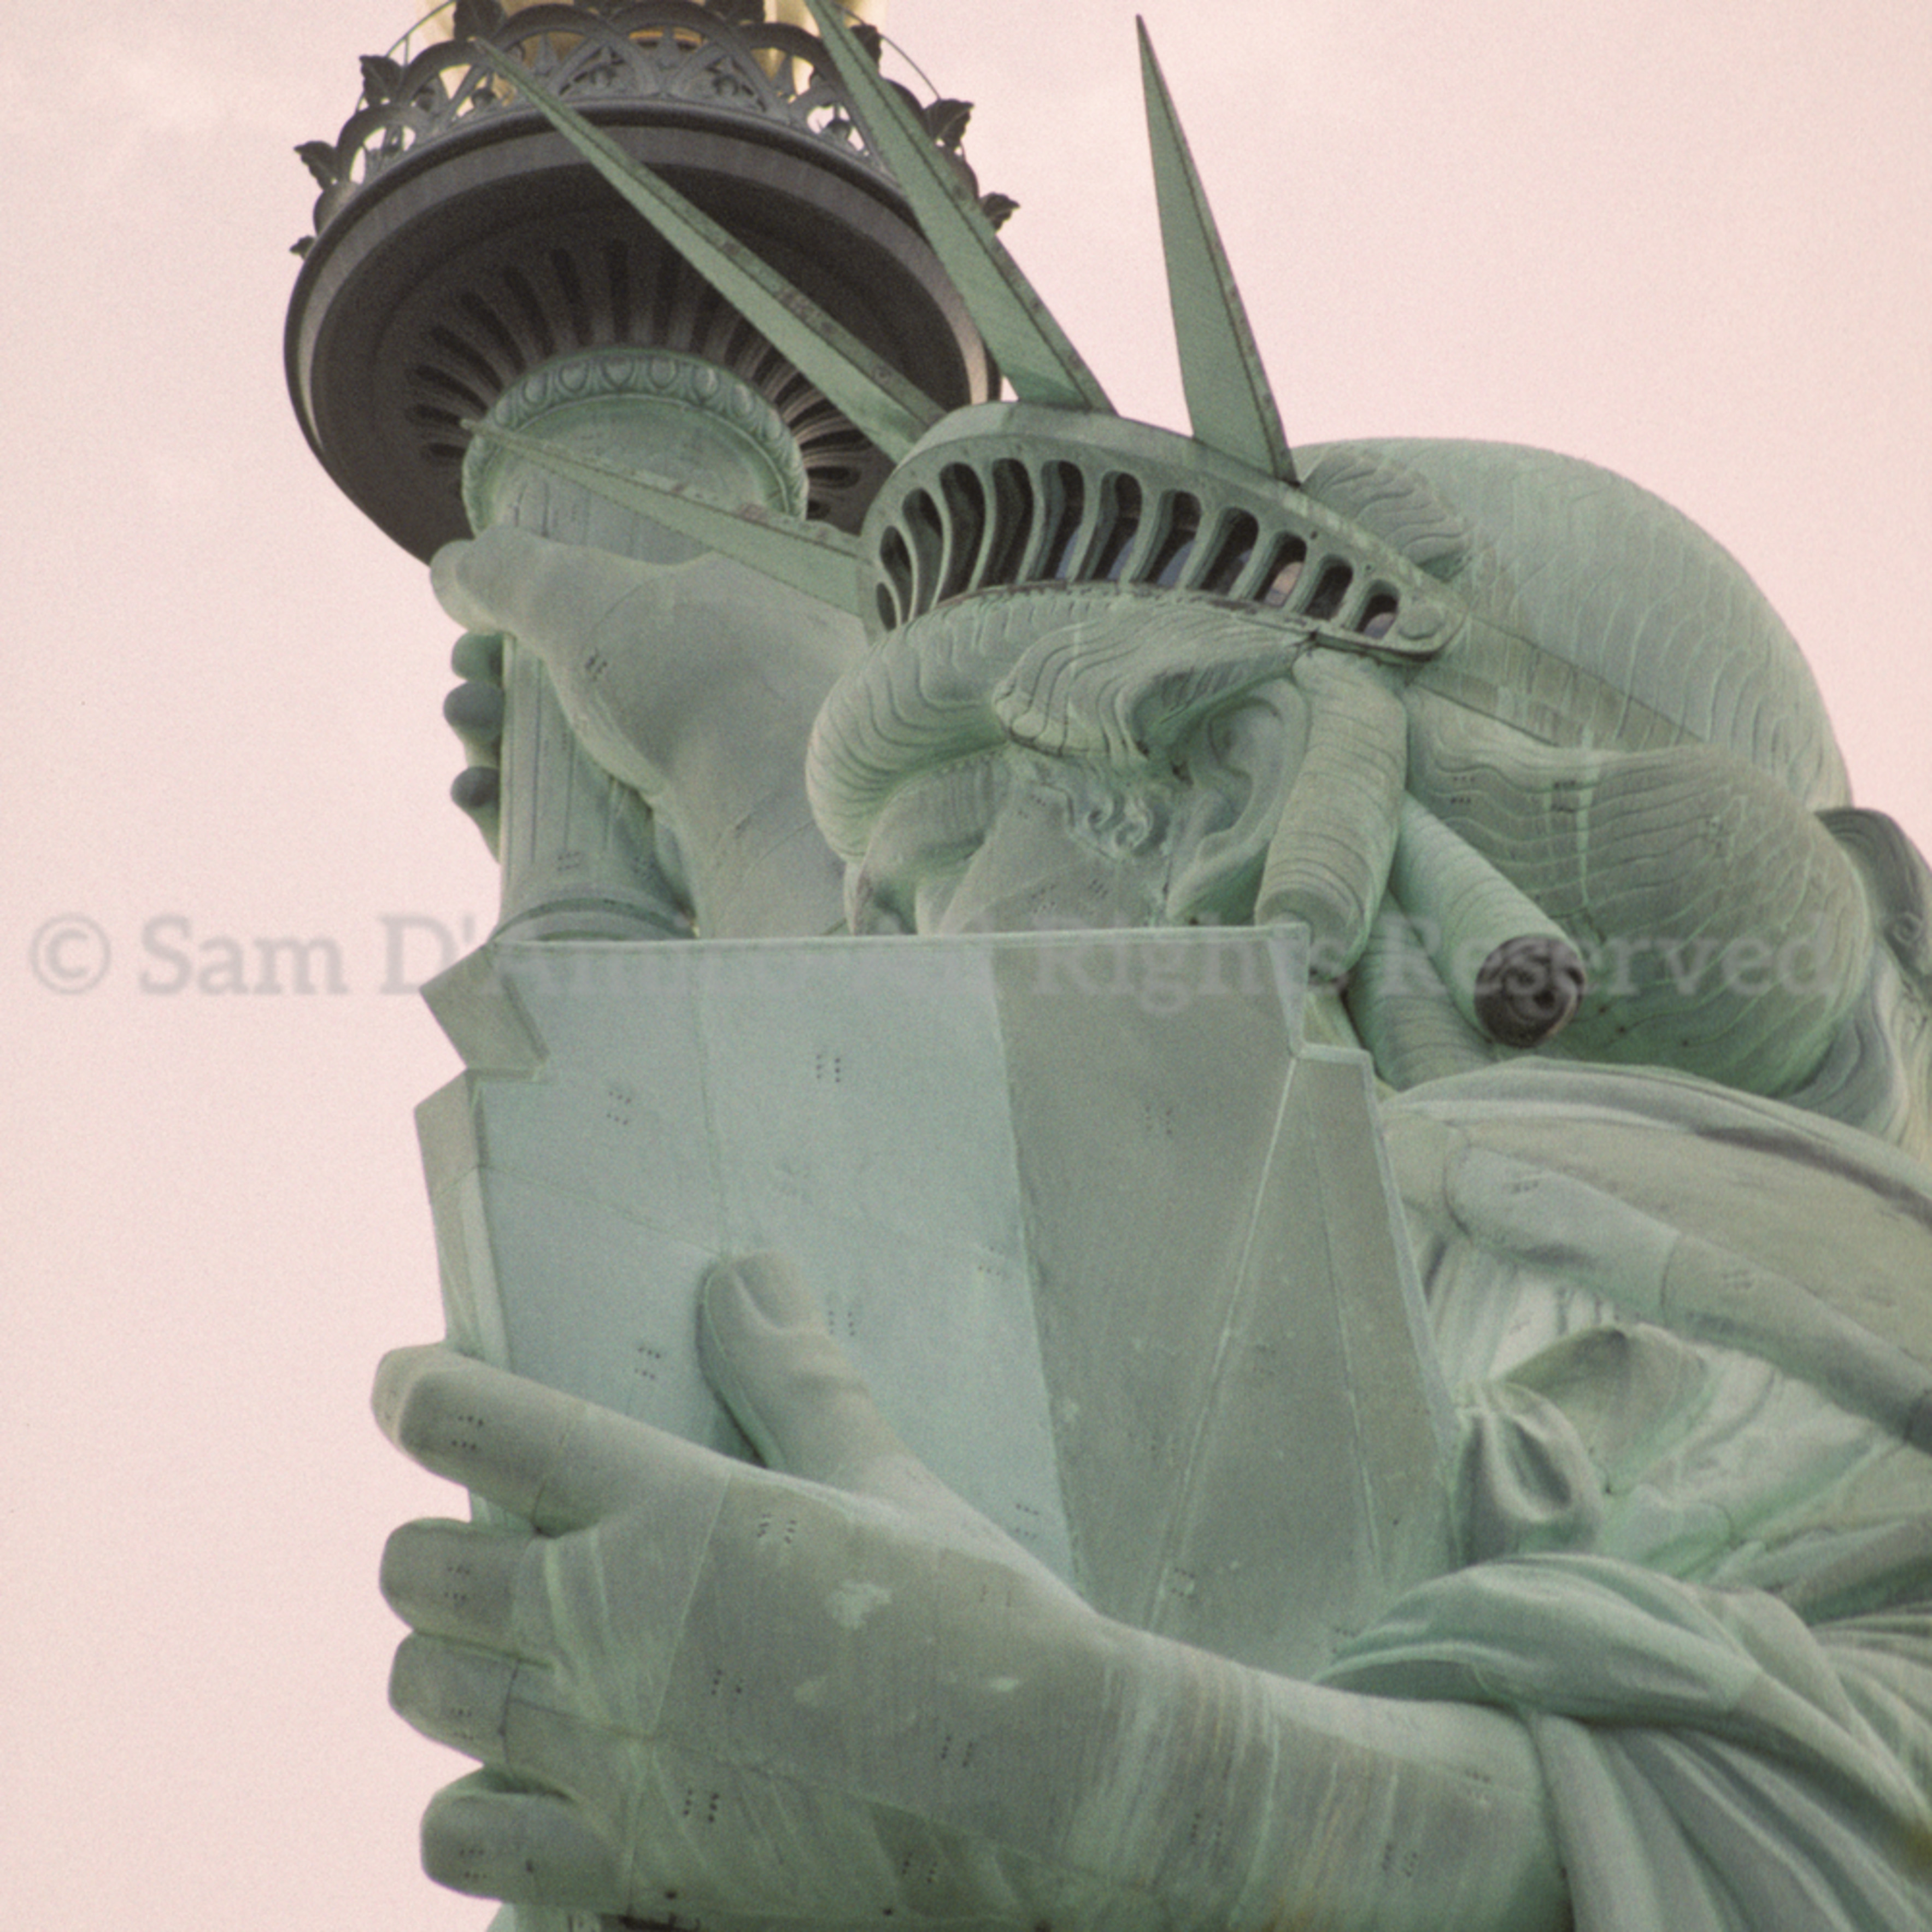 Statue of liberty close up side view mefzi7